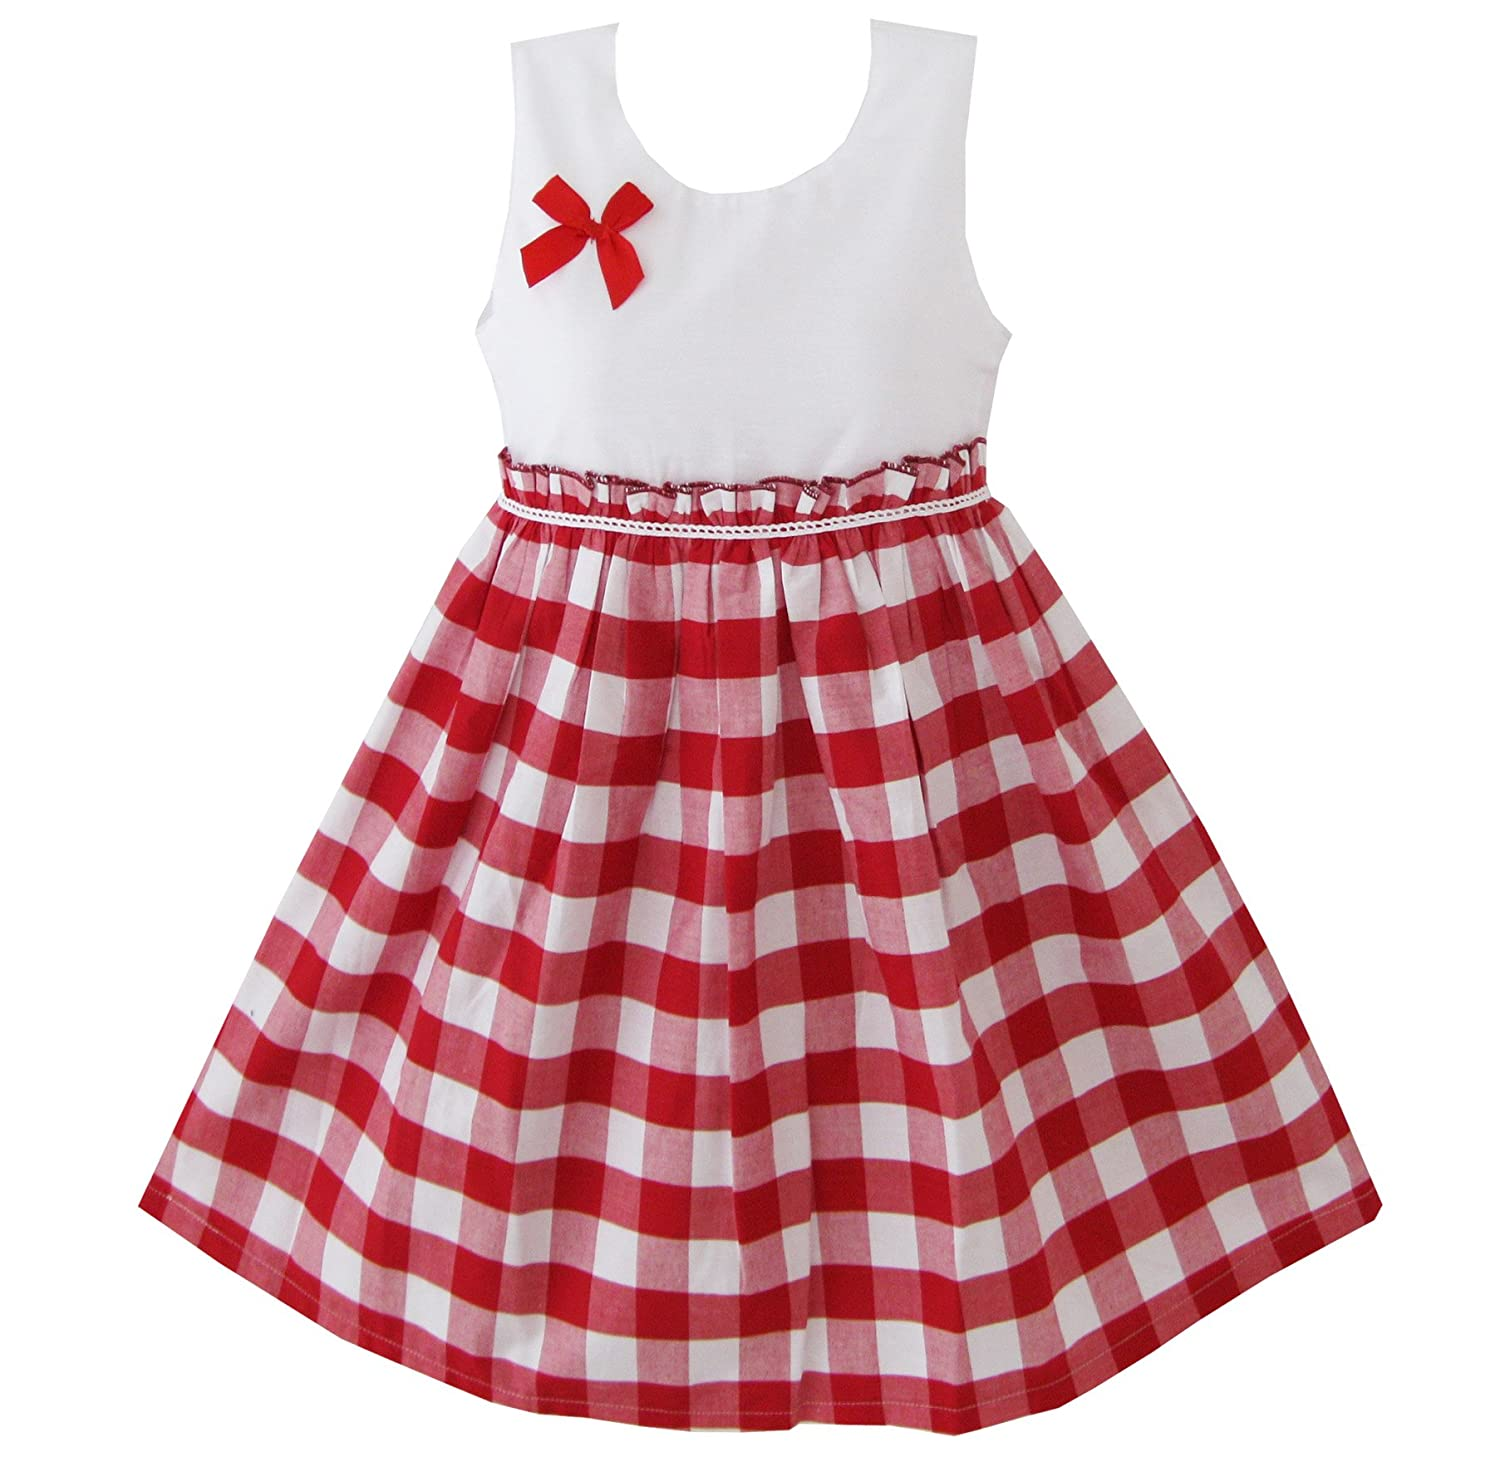 Kids 1950s Clothing & Costumes: Girls, Boys, Toddlers Sunny Fashion Girls Dress Red Tartan Sundress  AT vintagedancer.com